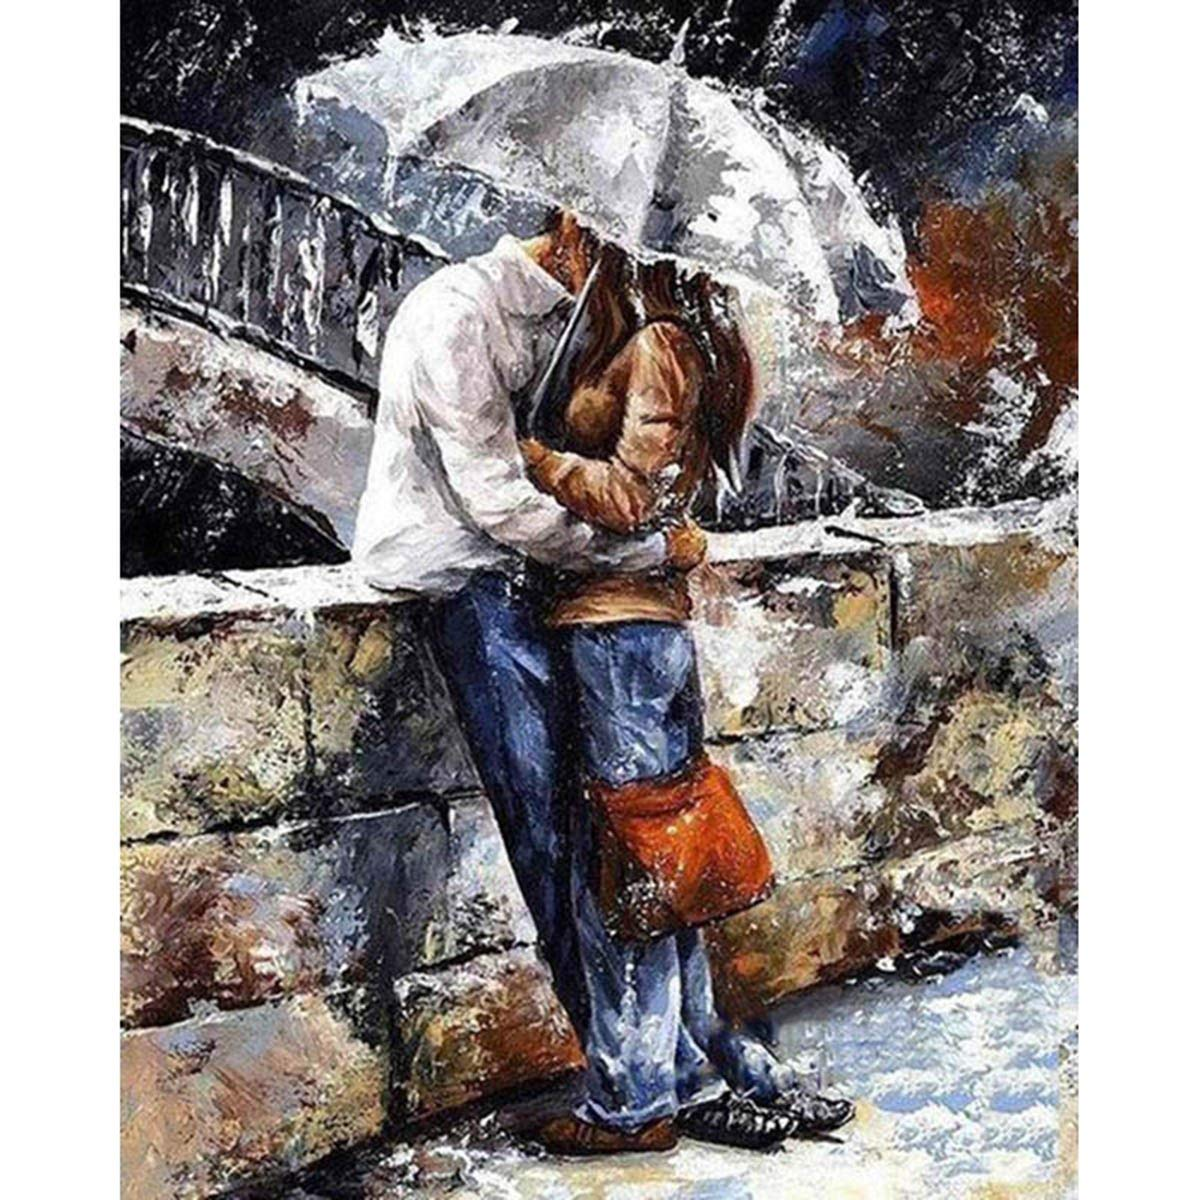 Shukqueen Diy Oil Painting, Adult's Paint by Number Kits, Acrylic Painting-Couple Kisses in the Rain 16X20 Inch (Framed Canvas)